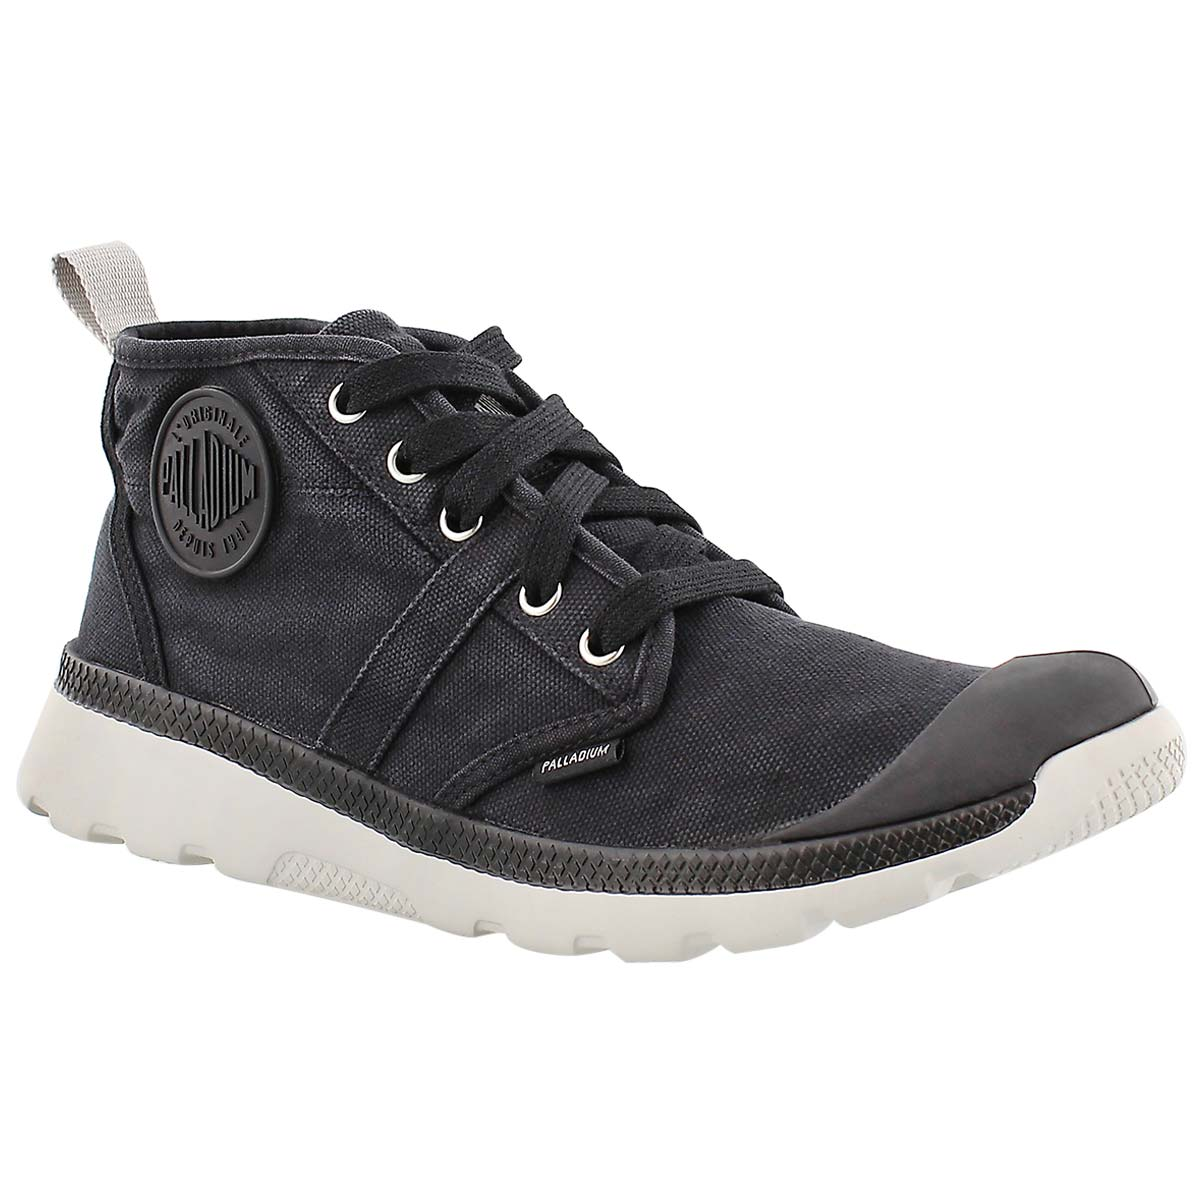 Men's PALLAVILLE HI black/wnd chme sneakers